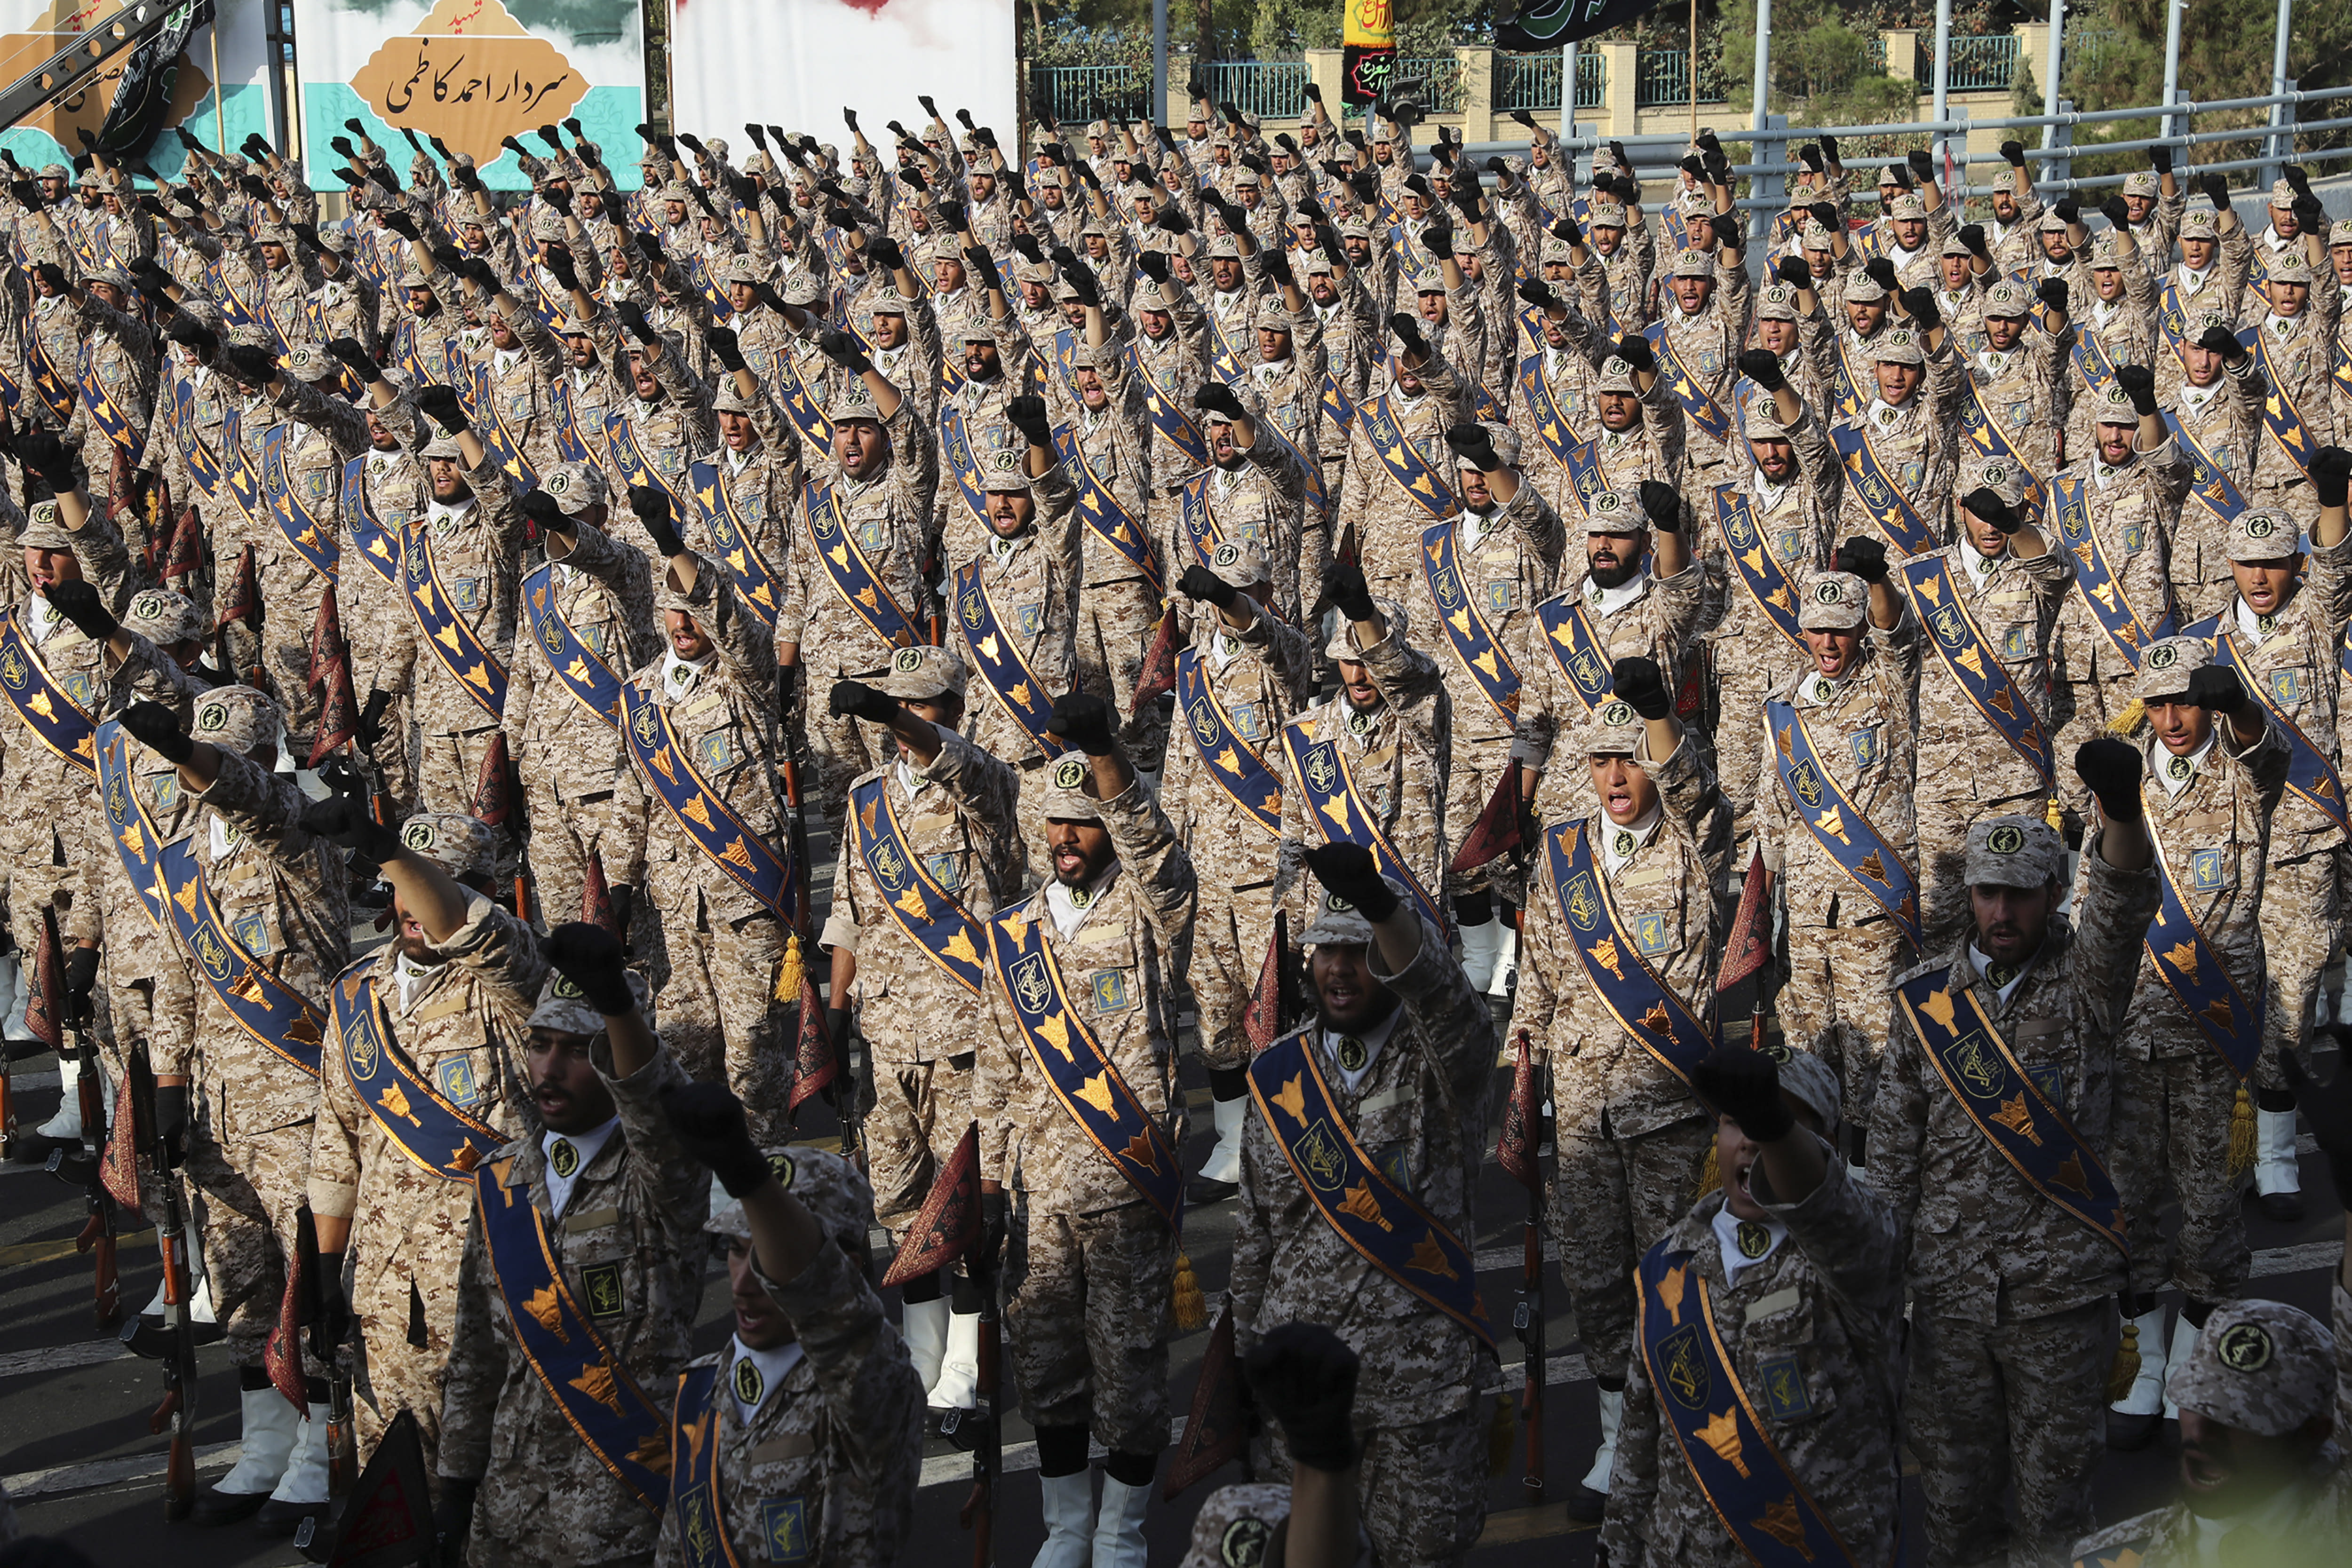 In this photo released by the official website of the office of the Iranian Presidency, Revolutionary Guard troops chant slogans at a military parade marking 39th anniversary of outset of Iran-Iraq war, in front of the shrine of the late revolutionary founder Ayatollah Khomeini, just outside Tehran, Iran, Sunday, Sept. 22, 2019. (Iranian Presidency Office via AP)